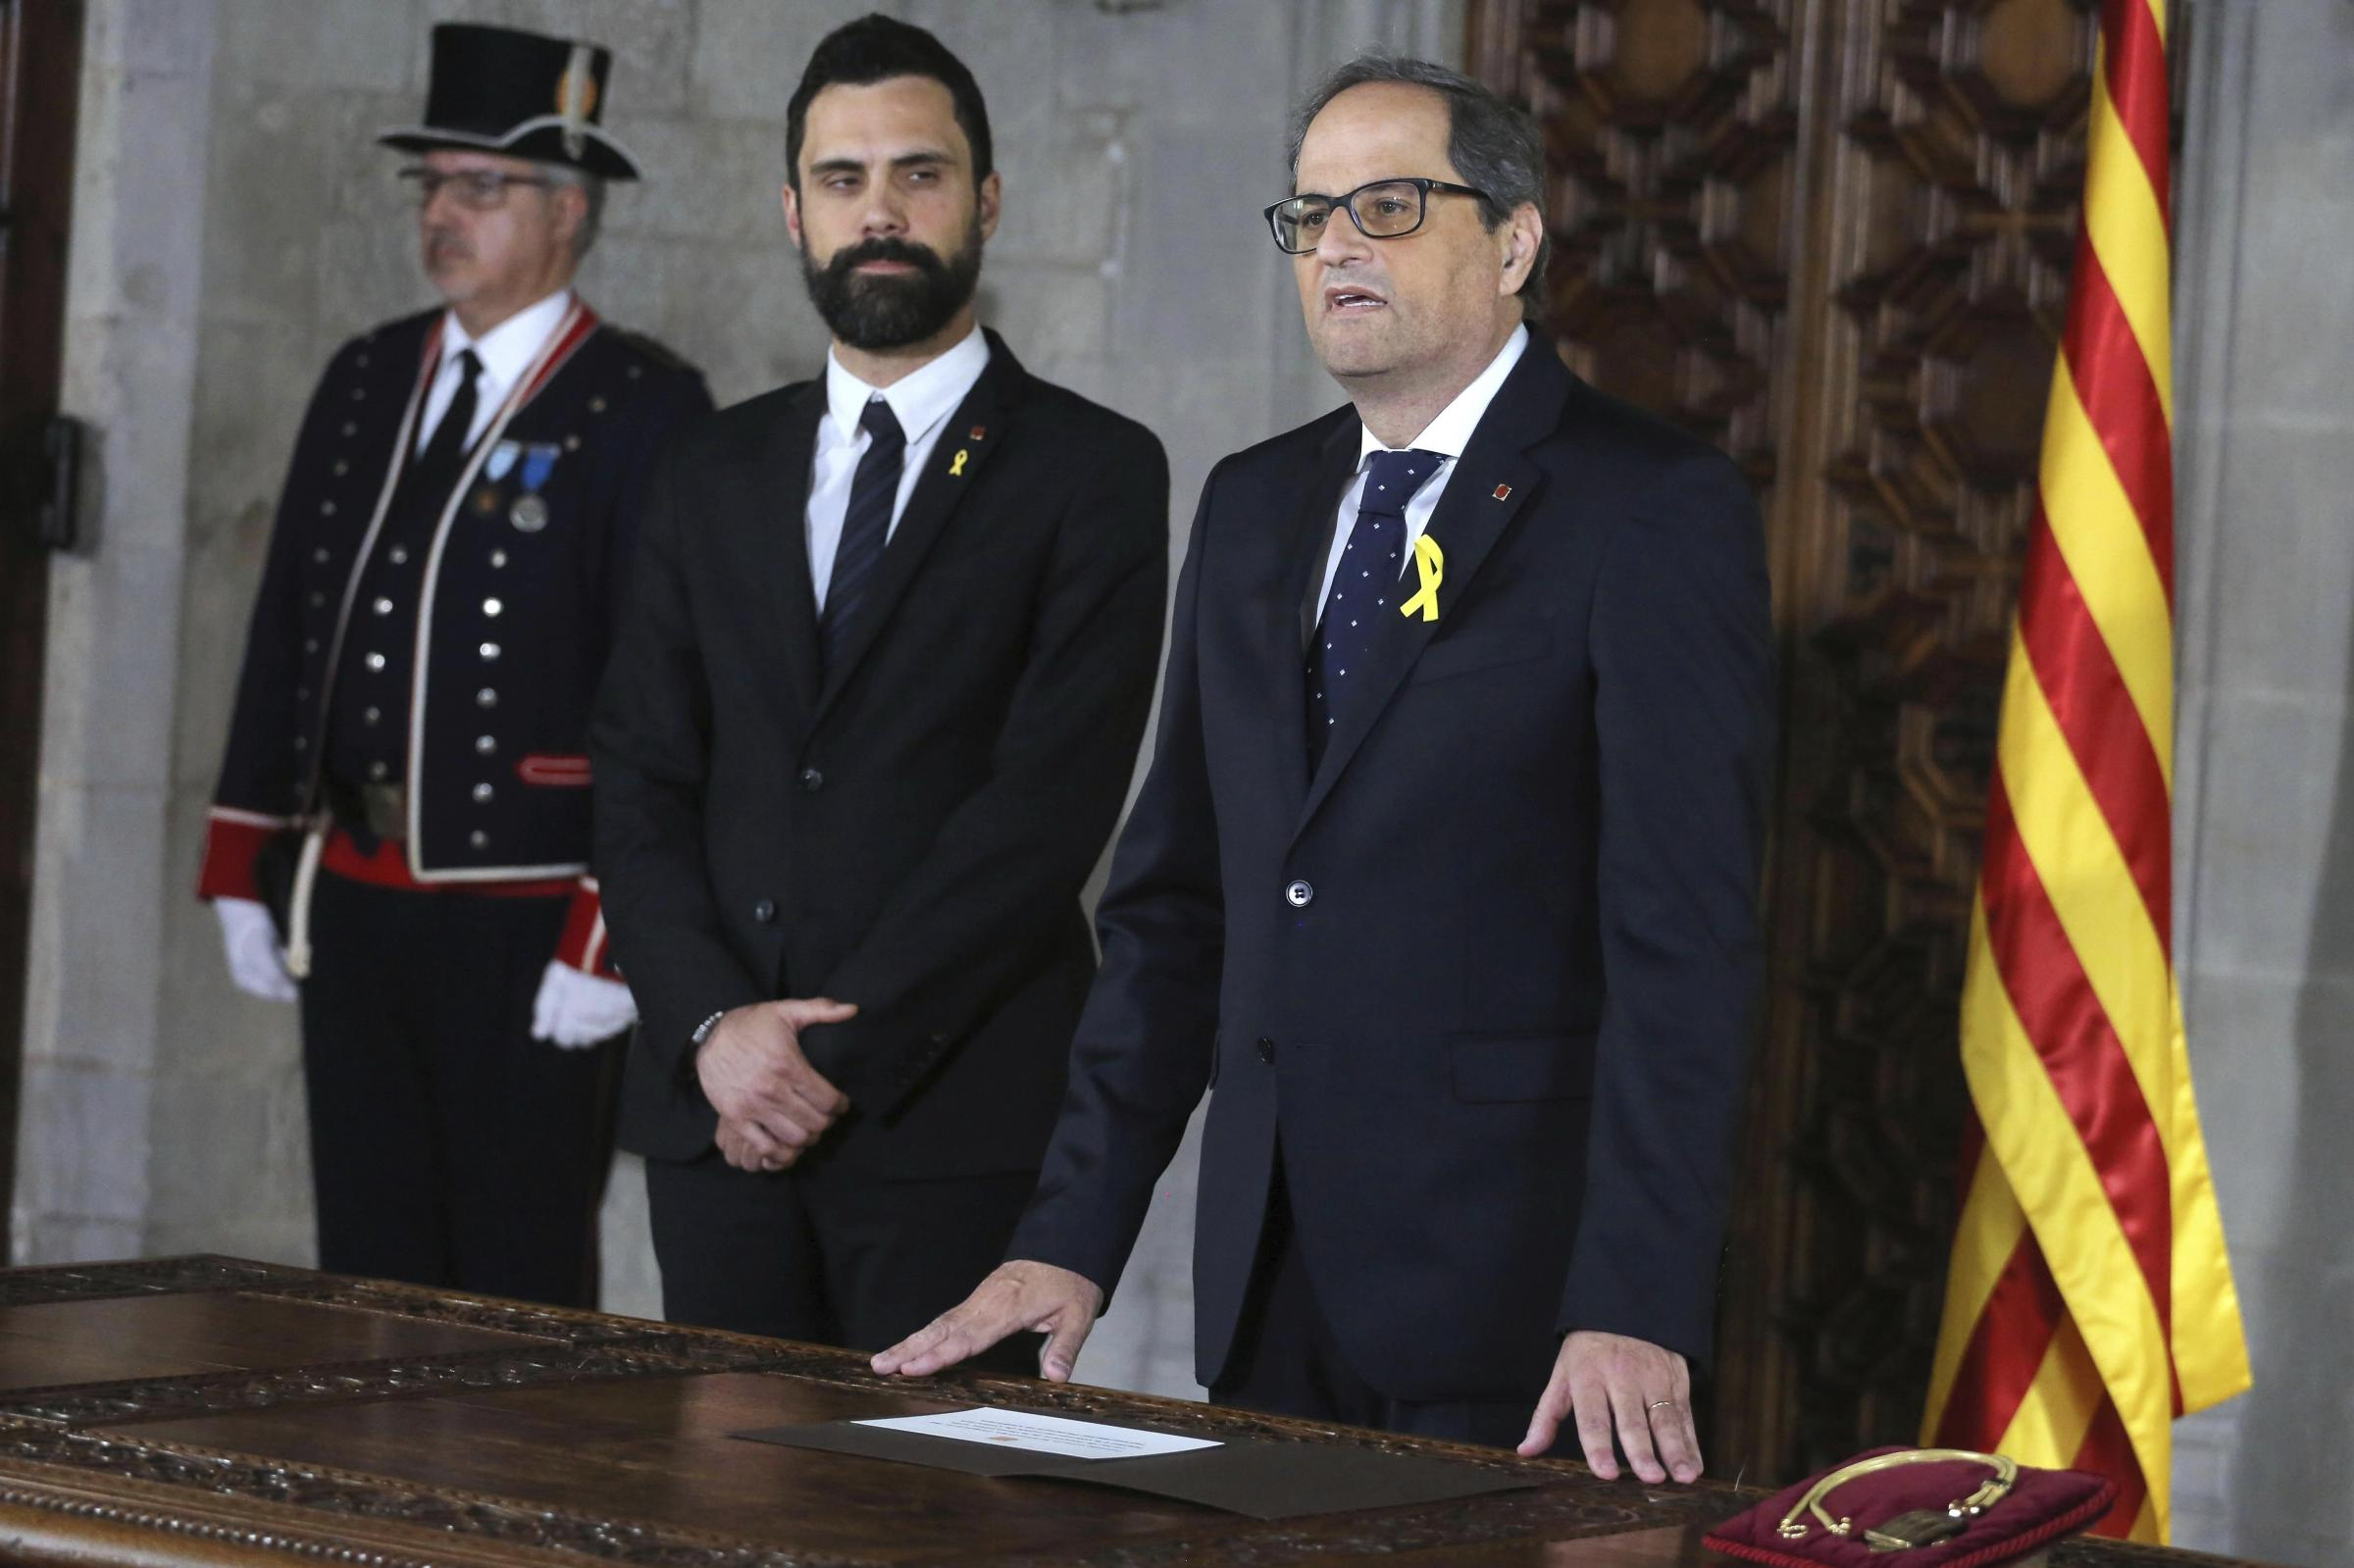 Catalan president Quim Torra, right, next to Catalan Parliament speaker Roger Torrent